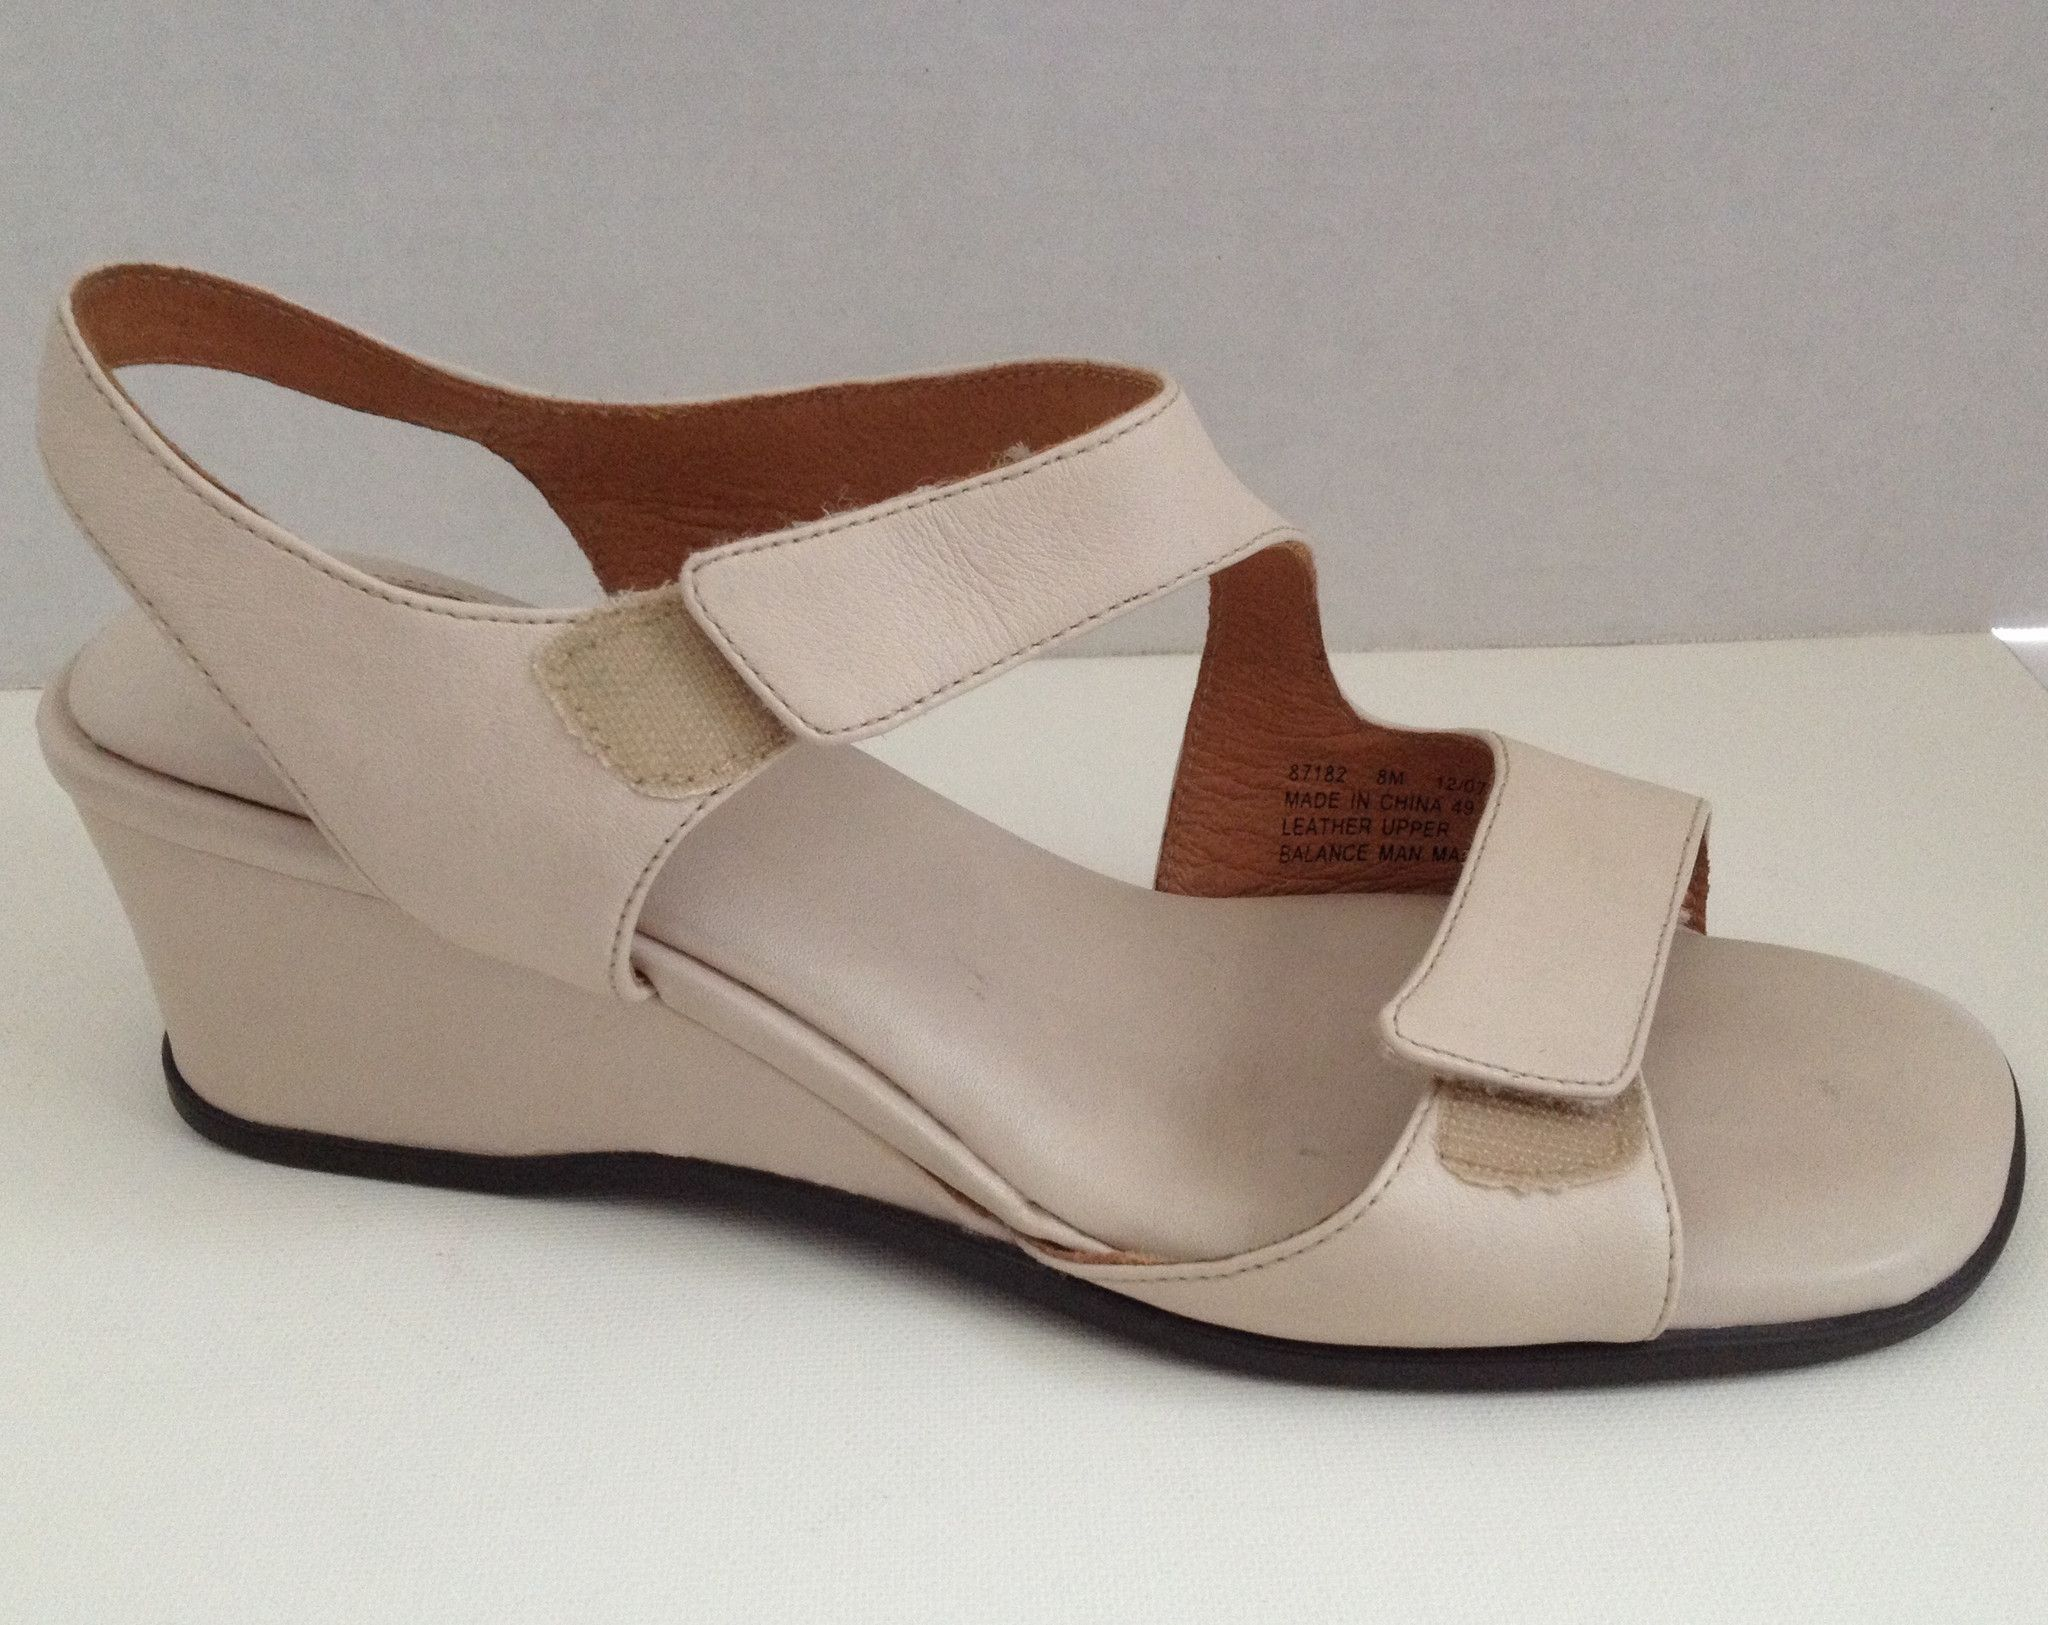 Clarks Artisan Shoes Womens Size 8 M Sandals Off White Wedge Heels ...